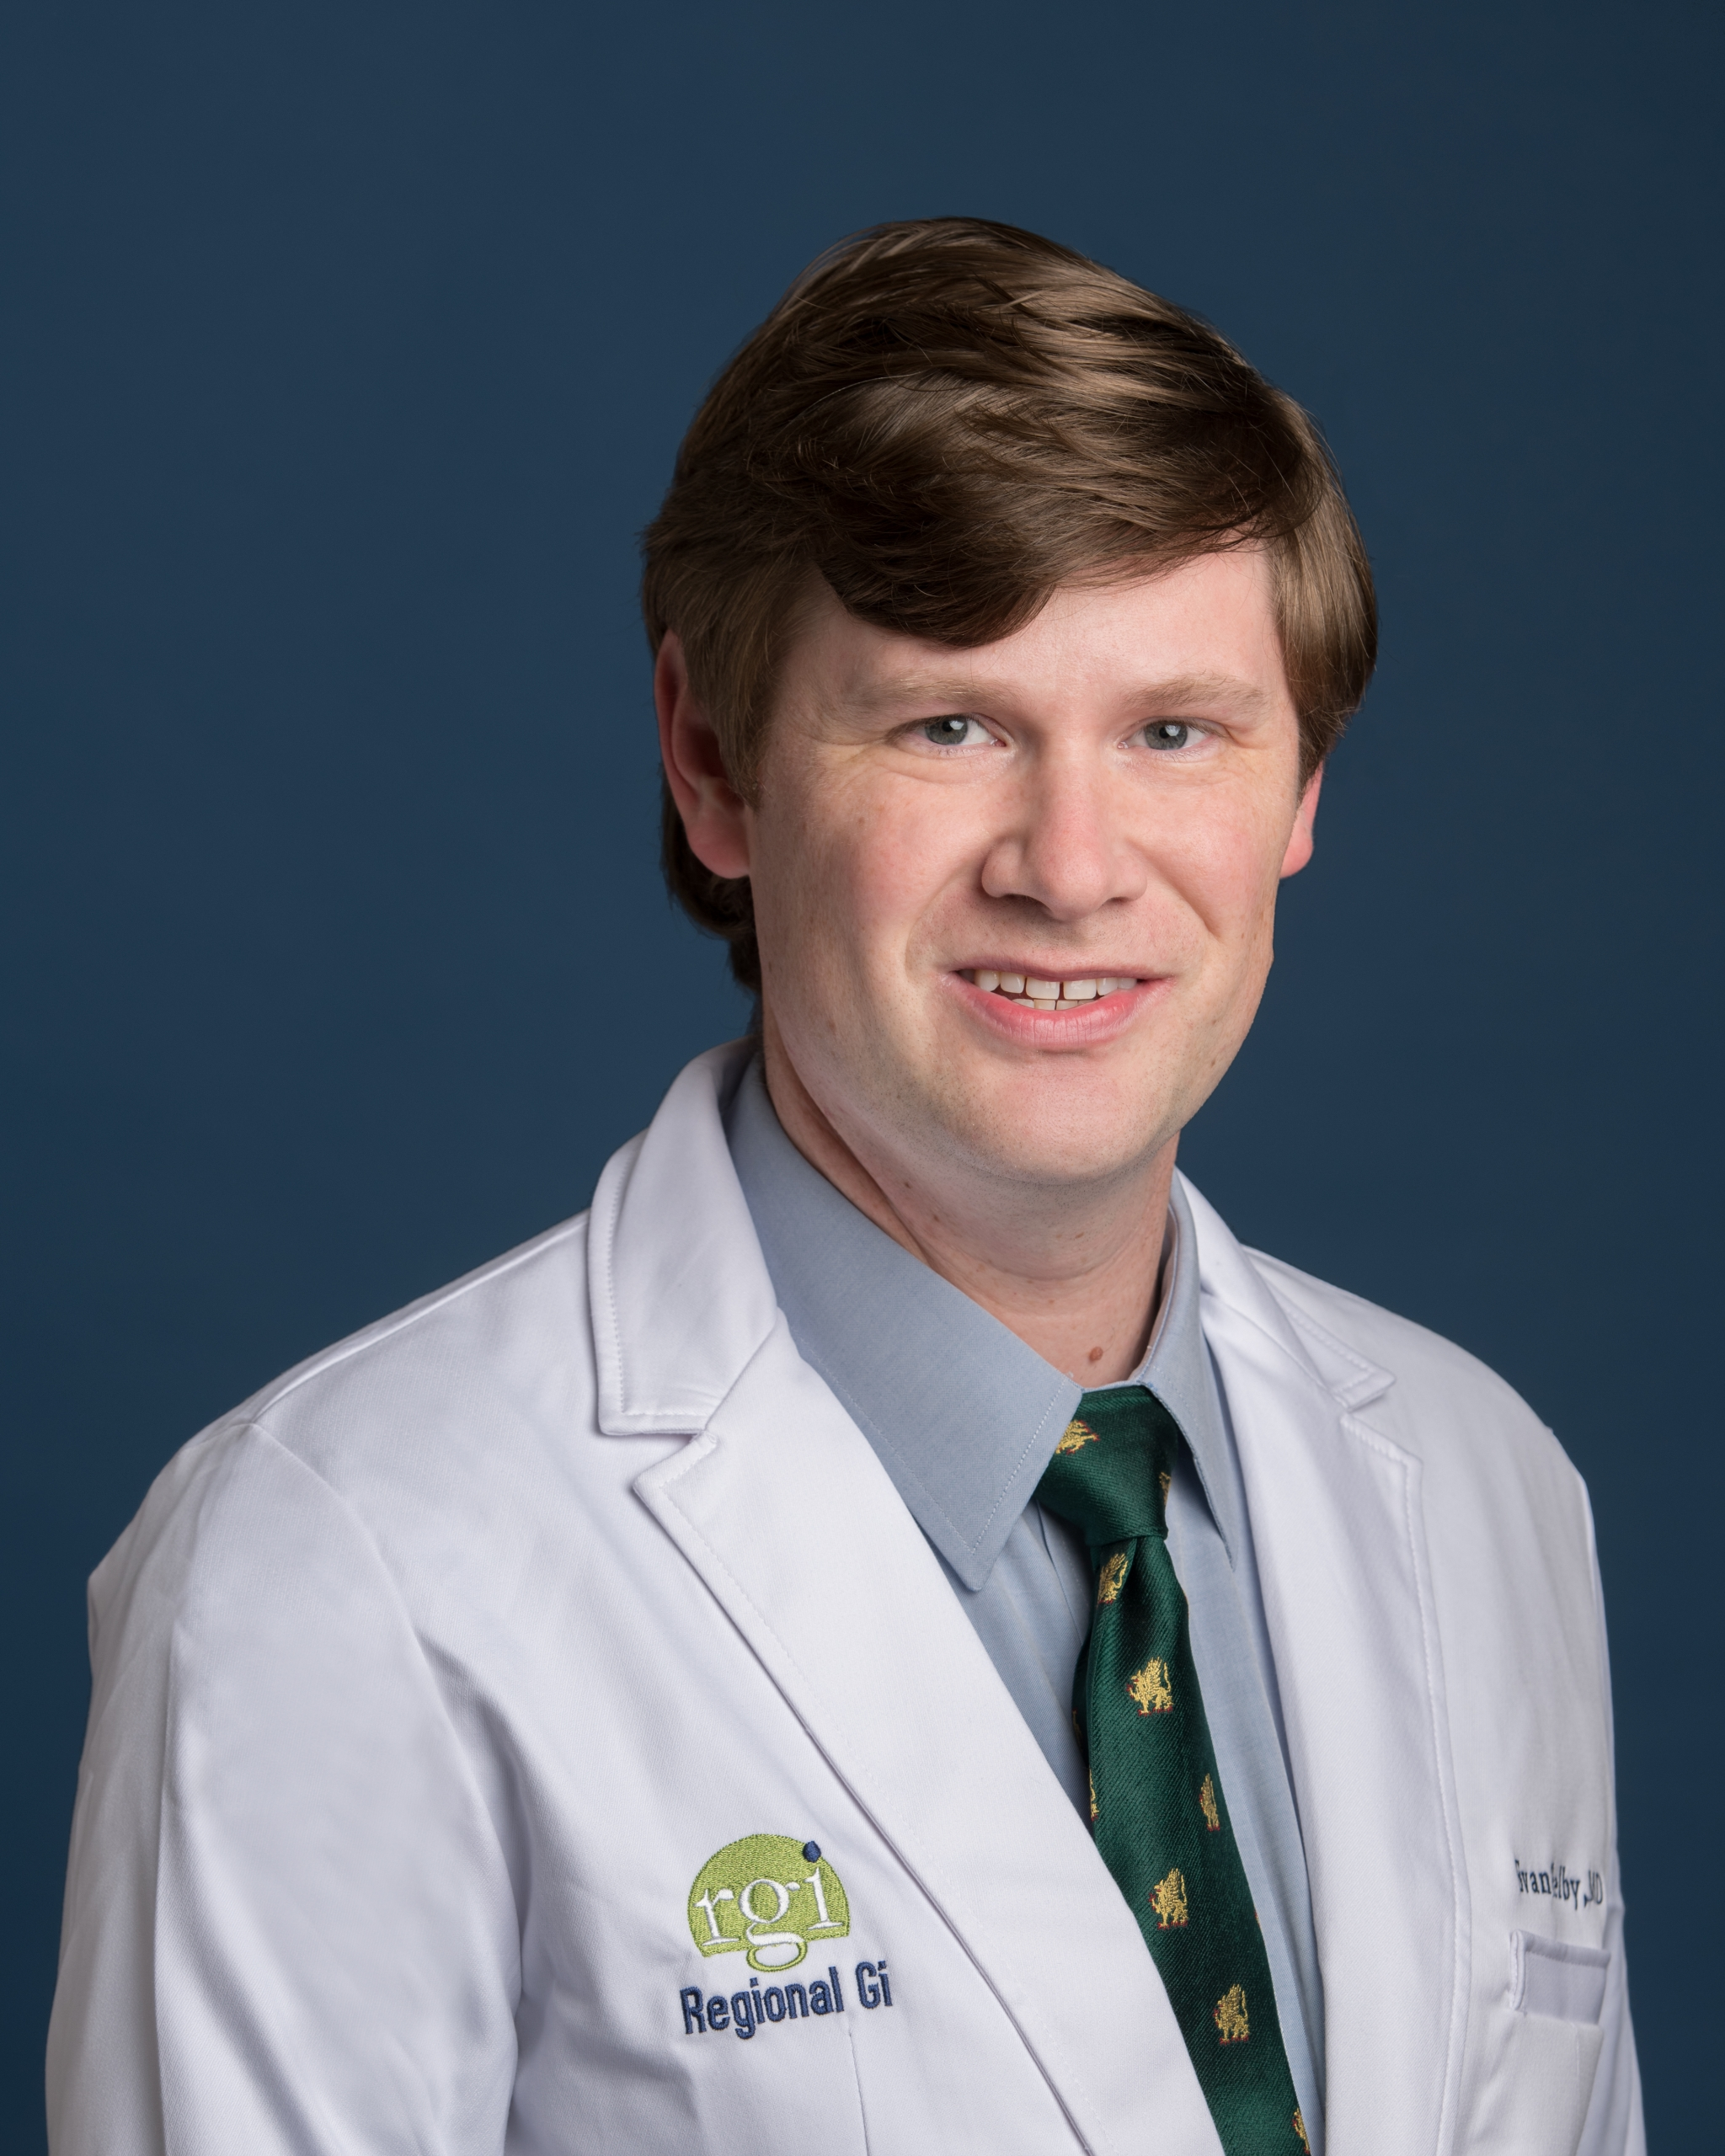 Dr. Evan Shelby